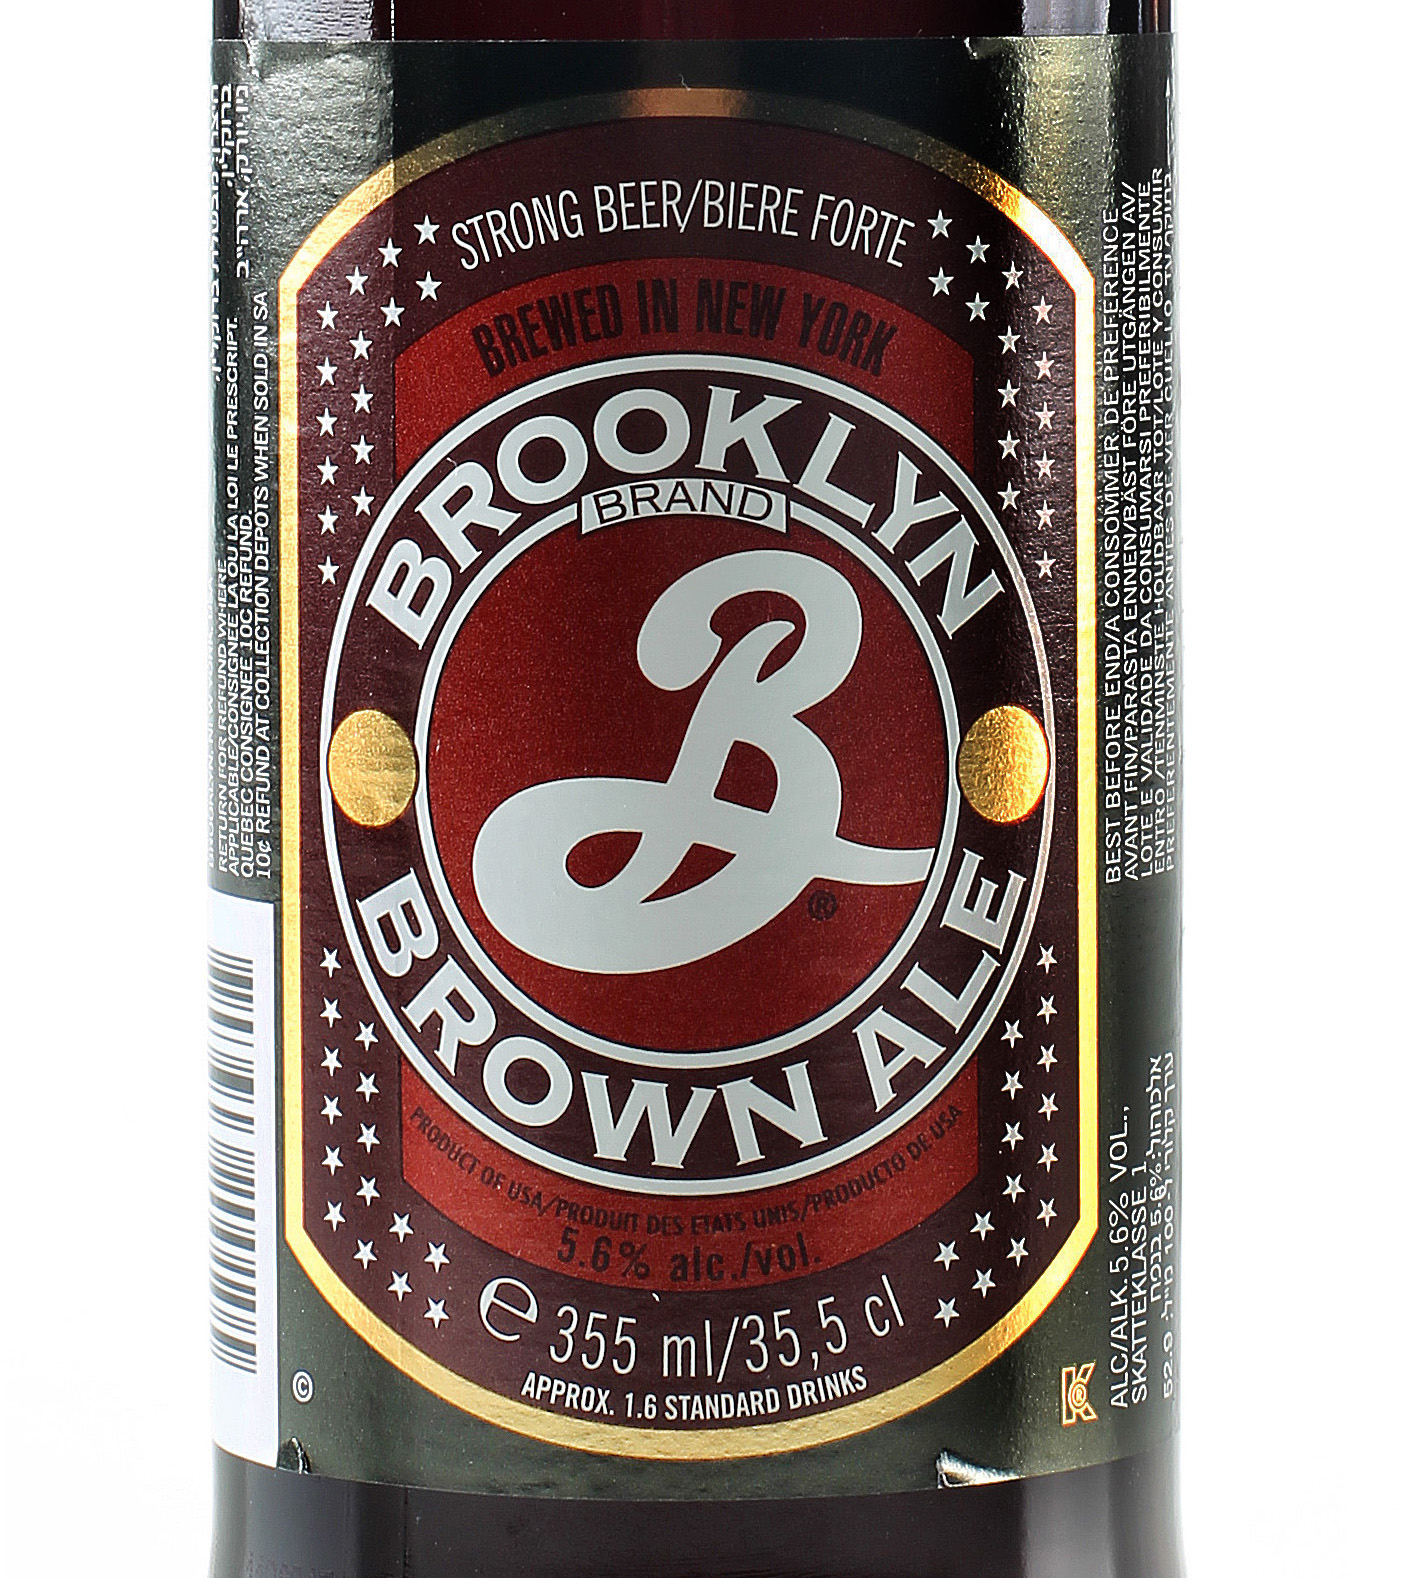 Brooklyn Brewery's Brooklyn Brown Ale